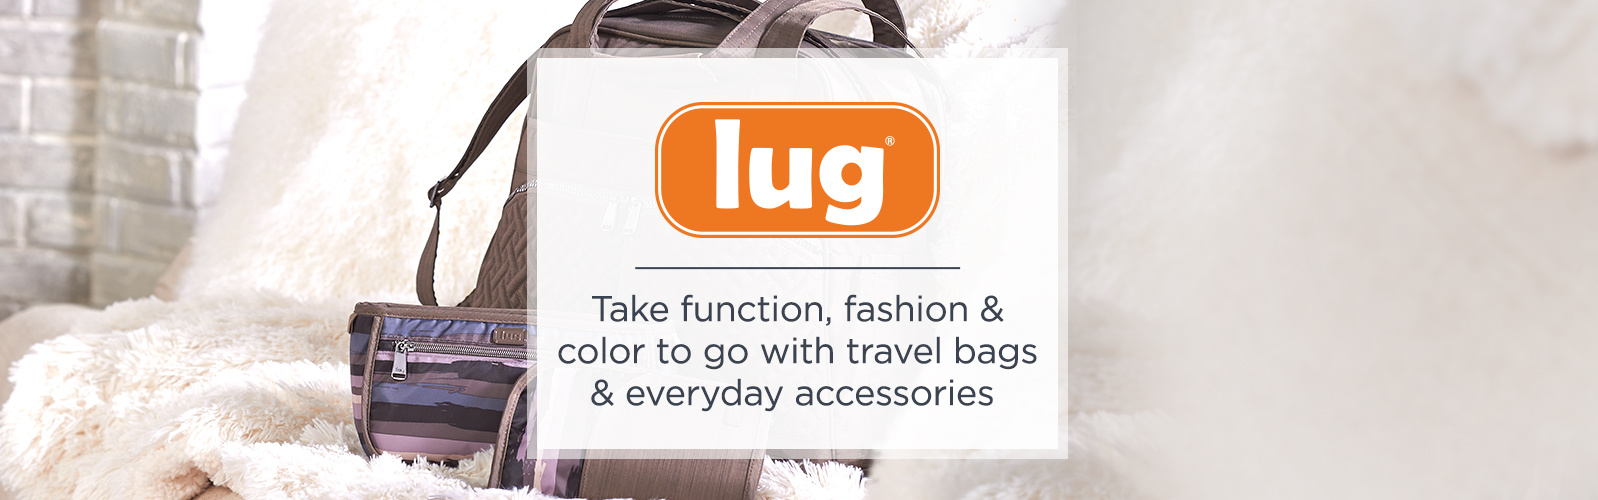 Lug , Take function, fashion & color to go with travel bags & everyday accessories